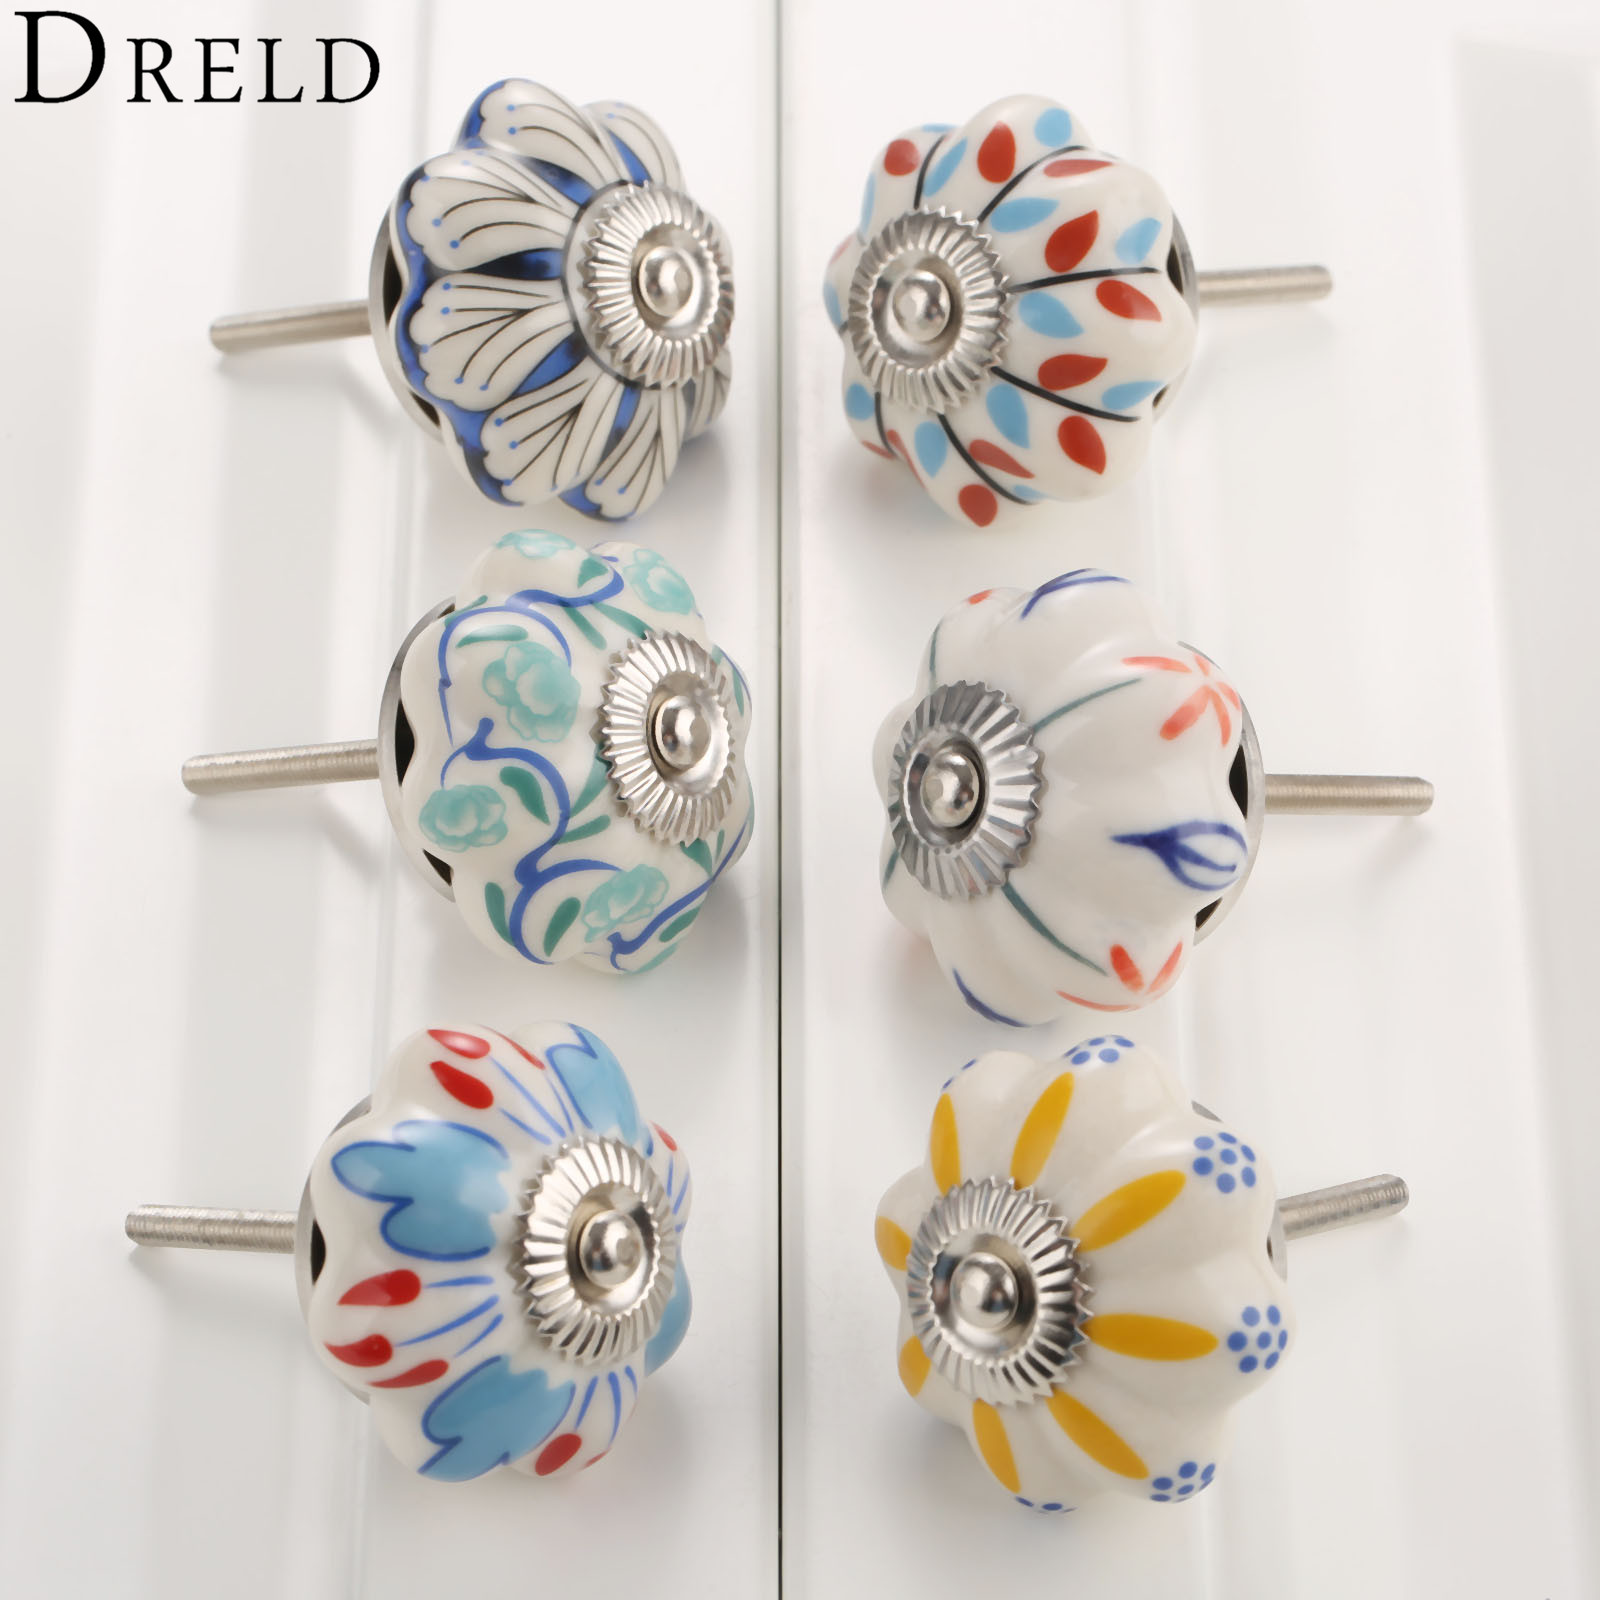 DRELD 40mm Furniture Handle Ceramic Drawer Cabinet Knobs and Handles Knobs Door Cupboard Kitchen Pull Handles Furniture Hardware 10 pcs vintage furniture handles cabinet knobs and handles cupboard door cabinet drawer knobs antique shell furniture handle